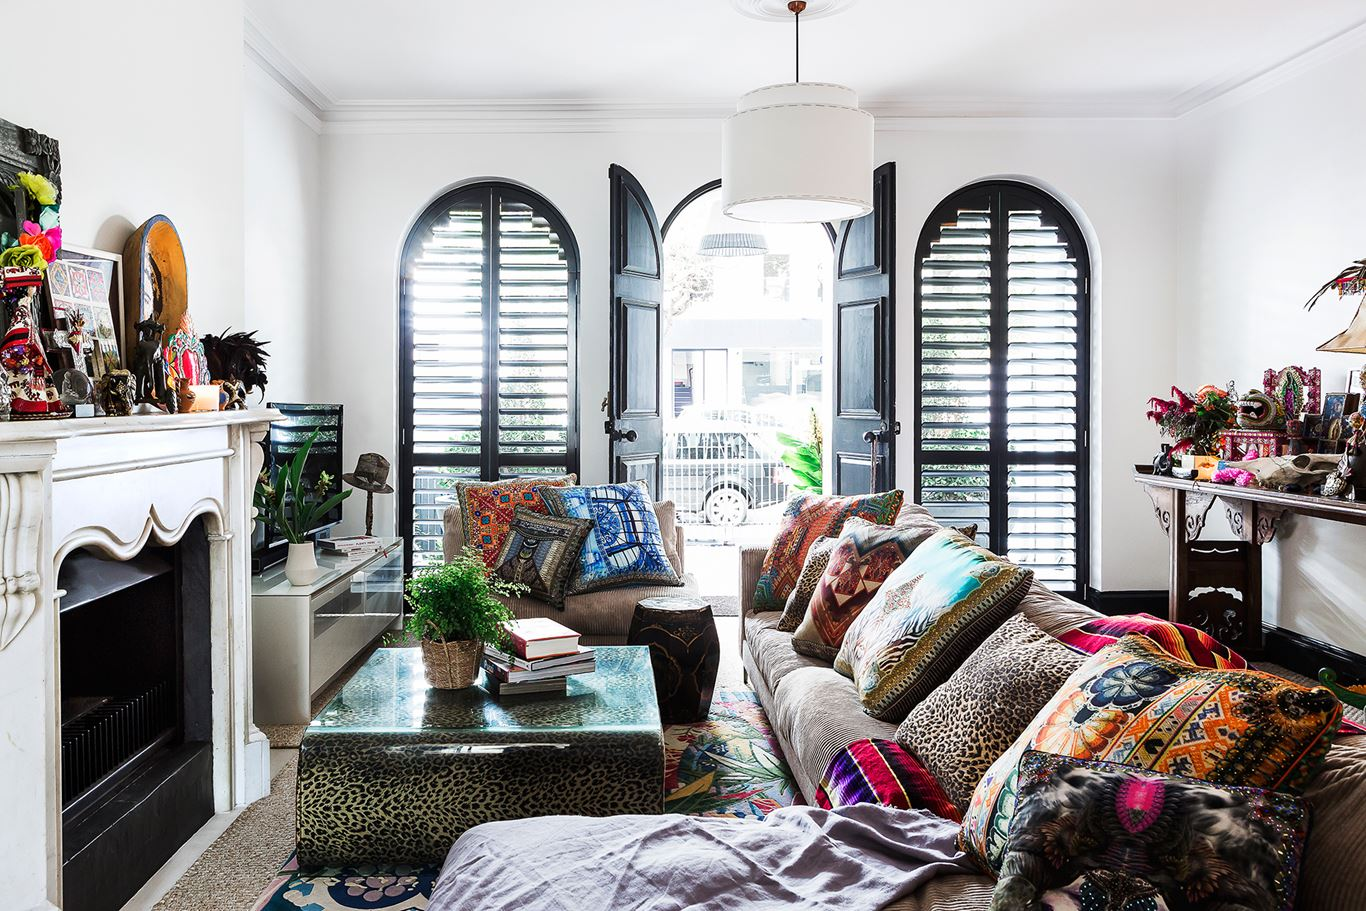 Designer Camilla Franks Has Layered Her Sydney Sanctuary With A Medley Of  Color, Prints, Bohemian Touches And The Trappings Of Travel With Style.